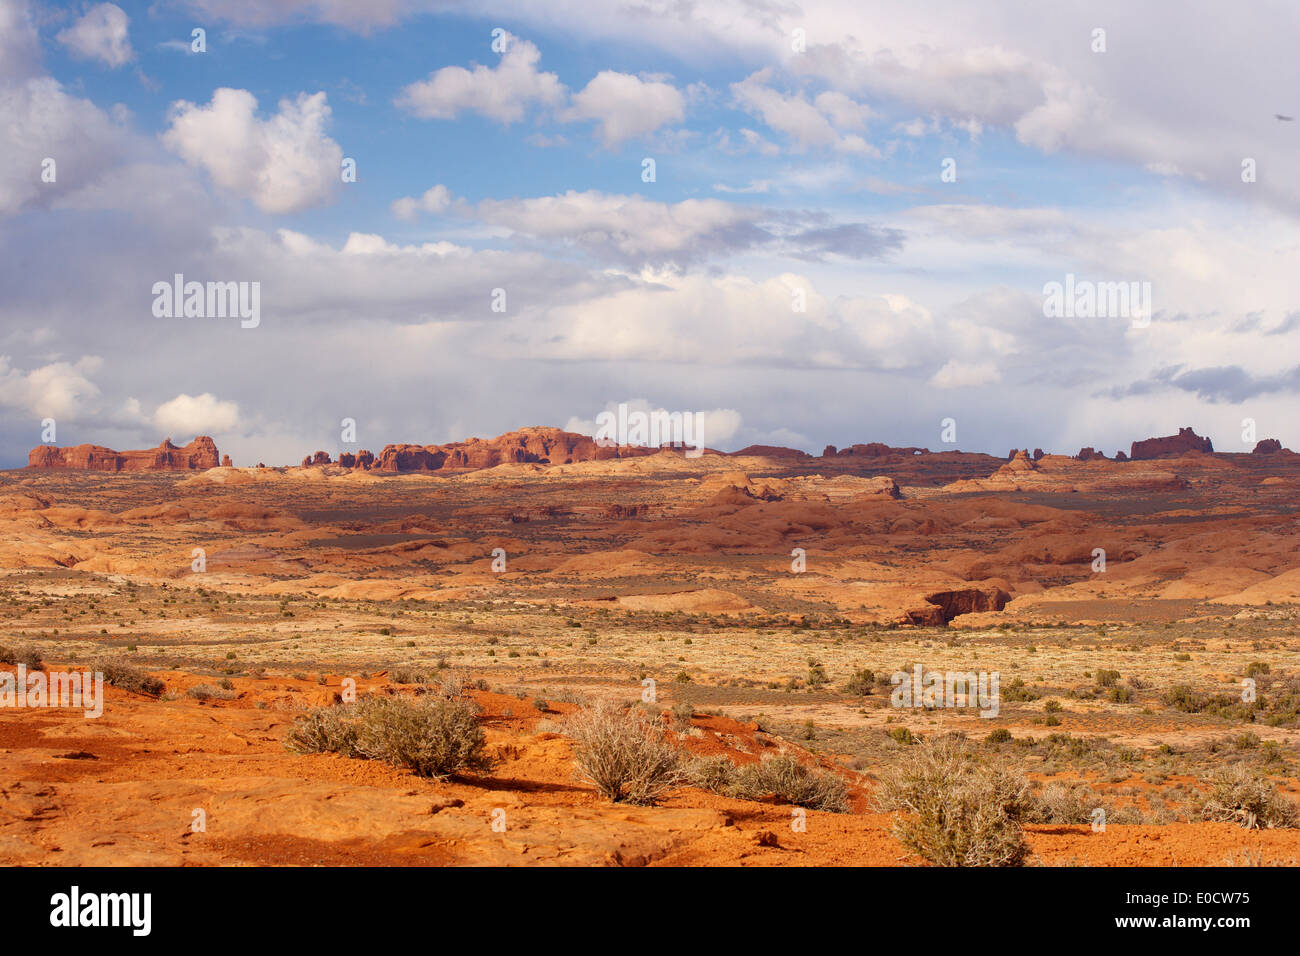 View from Park Avenue Viewpoint over the Petrified Dunes towards Balanced Rock and Windows Section, Arches National Park, Utah, - Stock Image